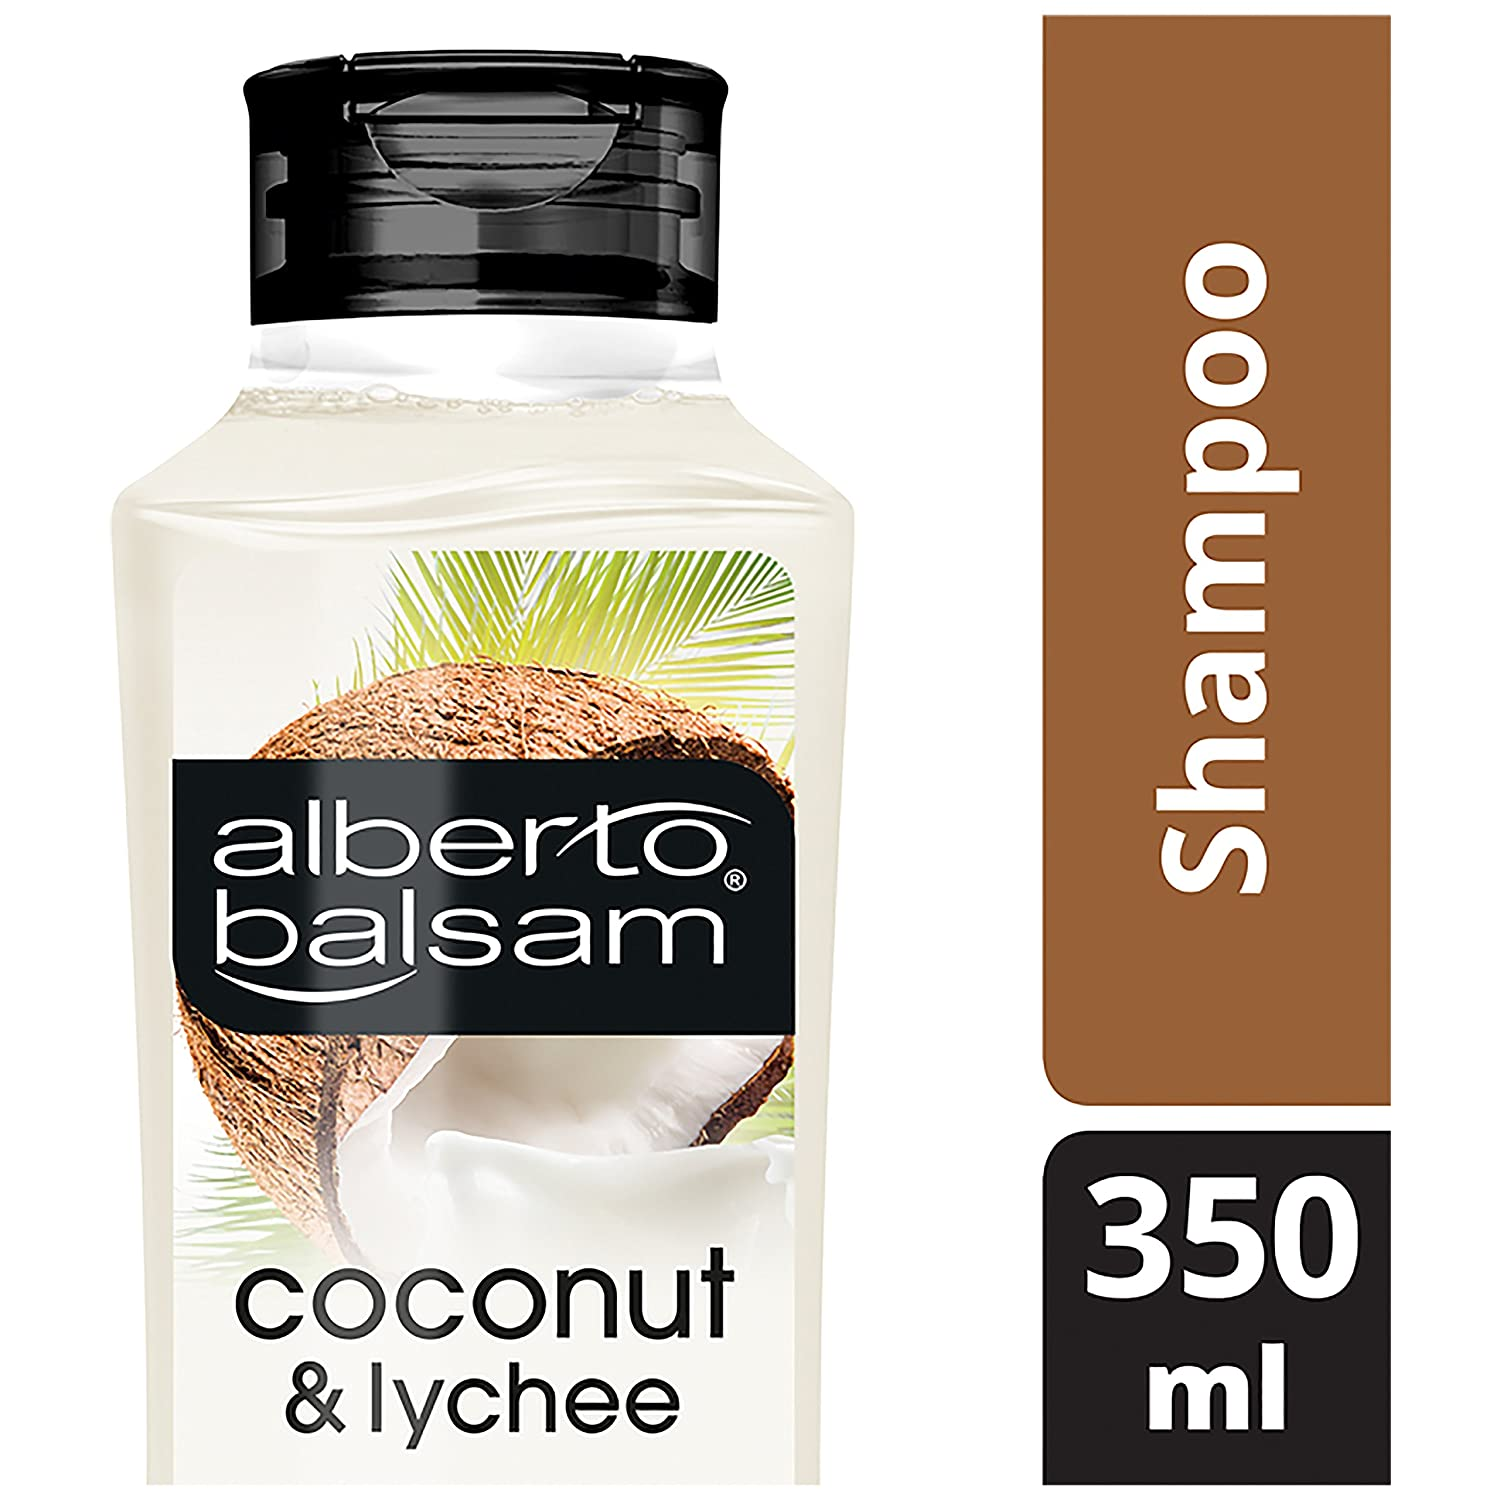 Balsam for gums Asepta: reviews, price, instructions for use 10